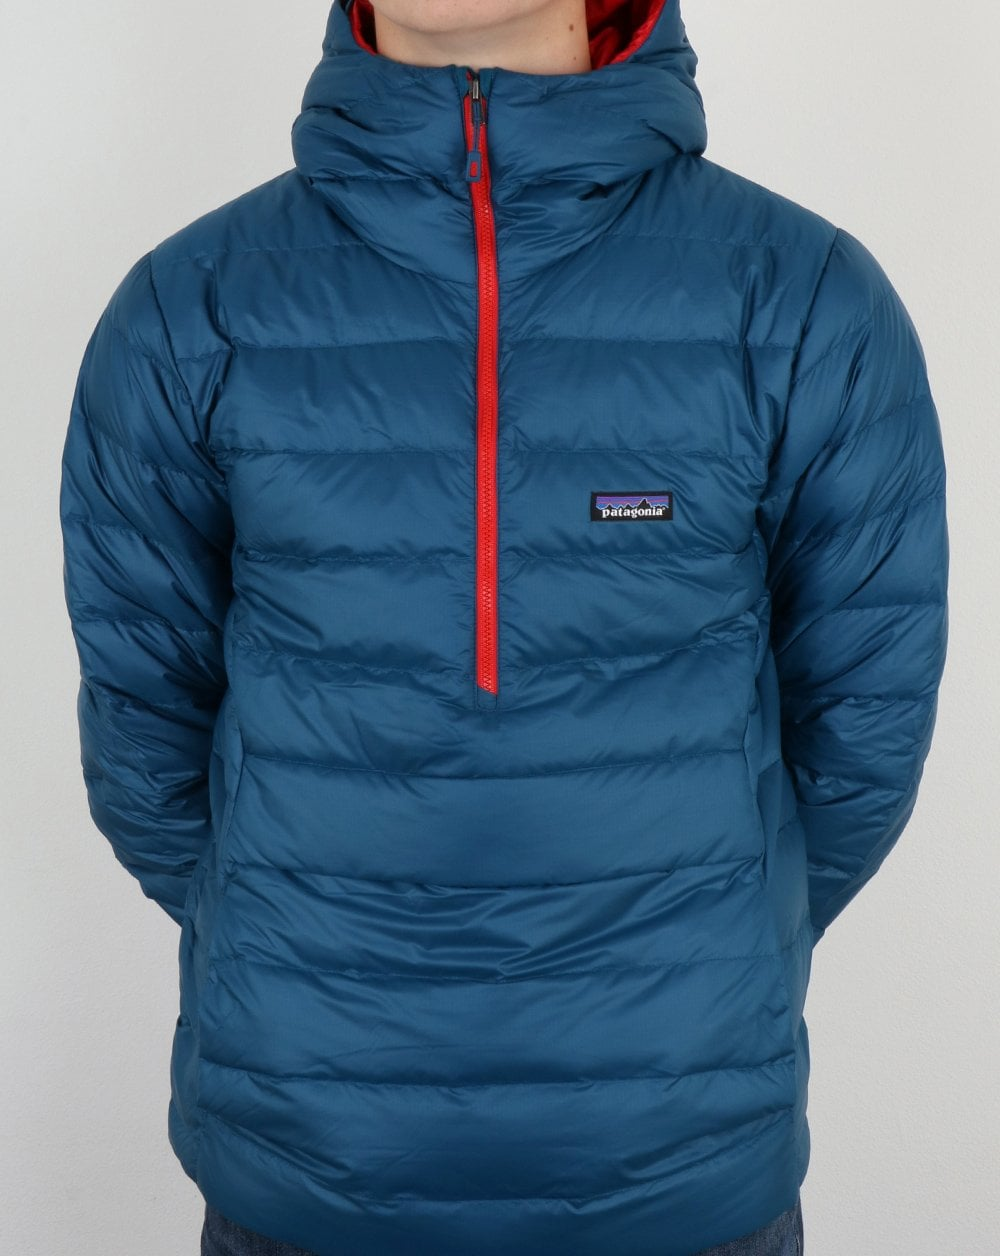 Patagonia Overhead Jacket In Blue Puffer Bubble Coat Mens